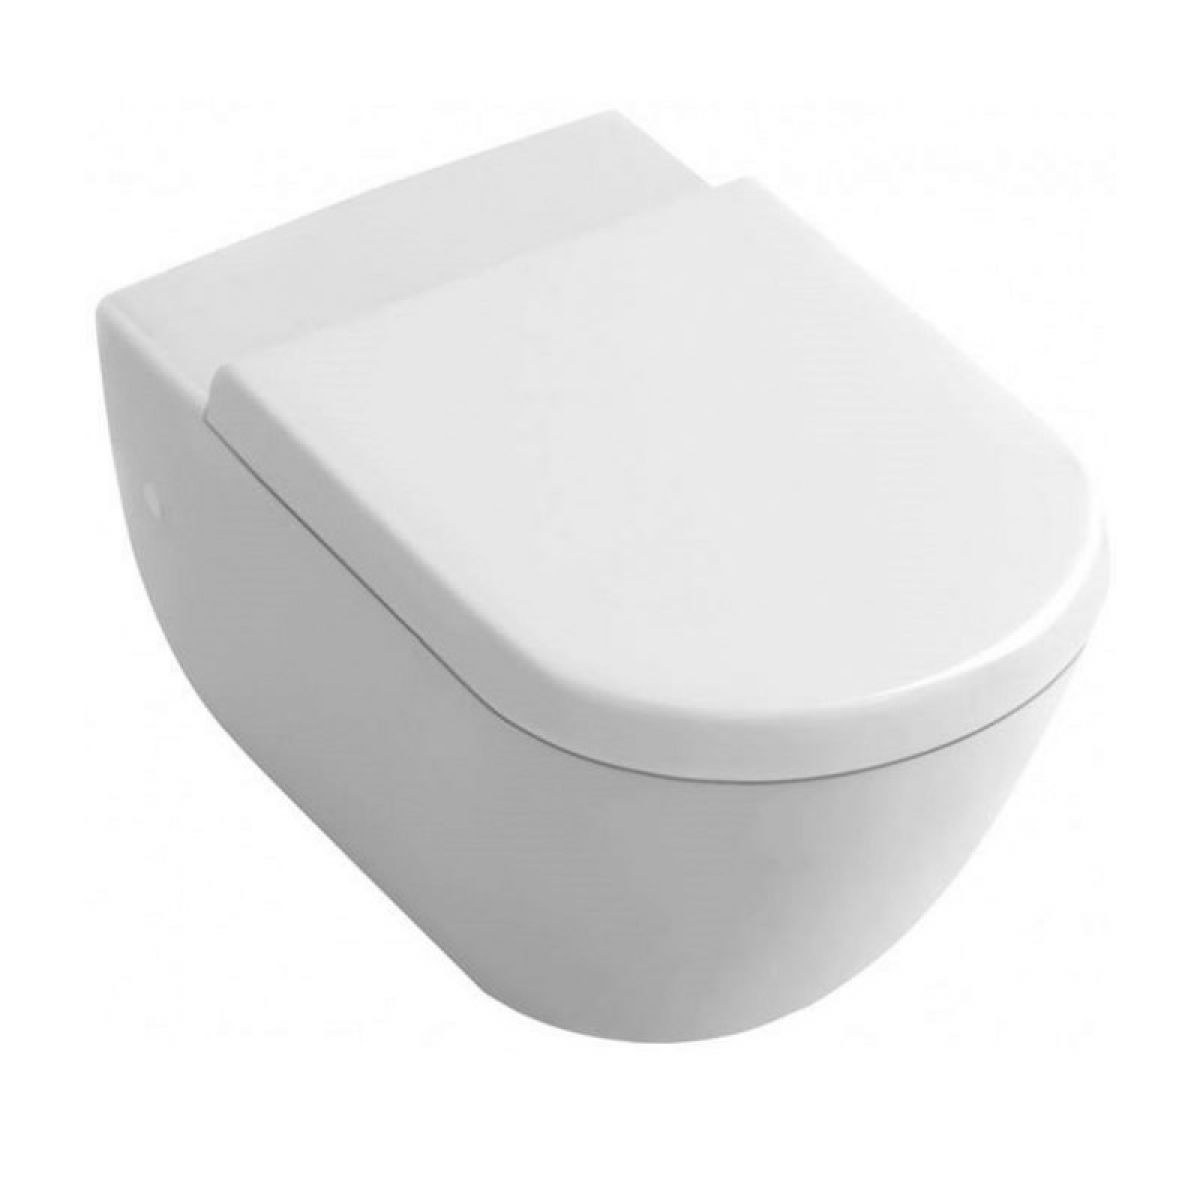 Abacus Bathrooms Simple Wall Hung Toilet